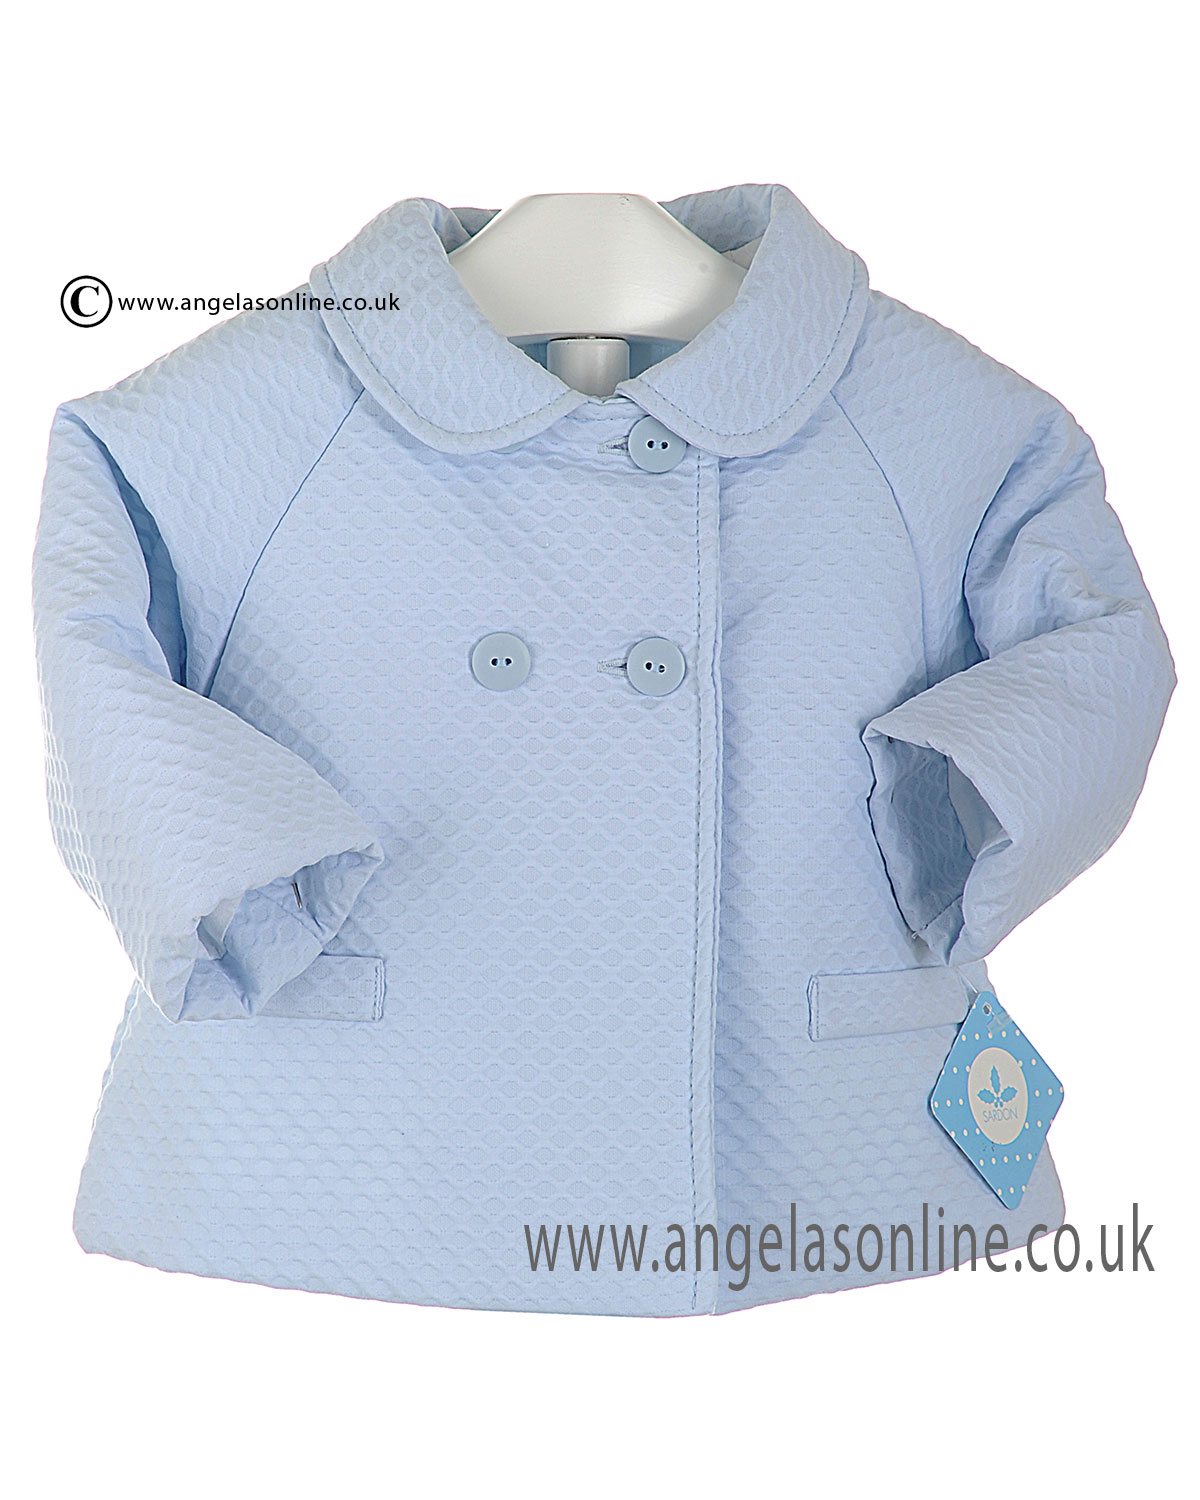 7eac53391 Sardon pale blue baby boys tailored coat with pockets AB1686 Blue